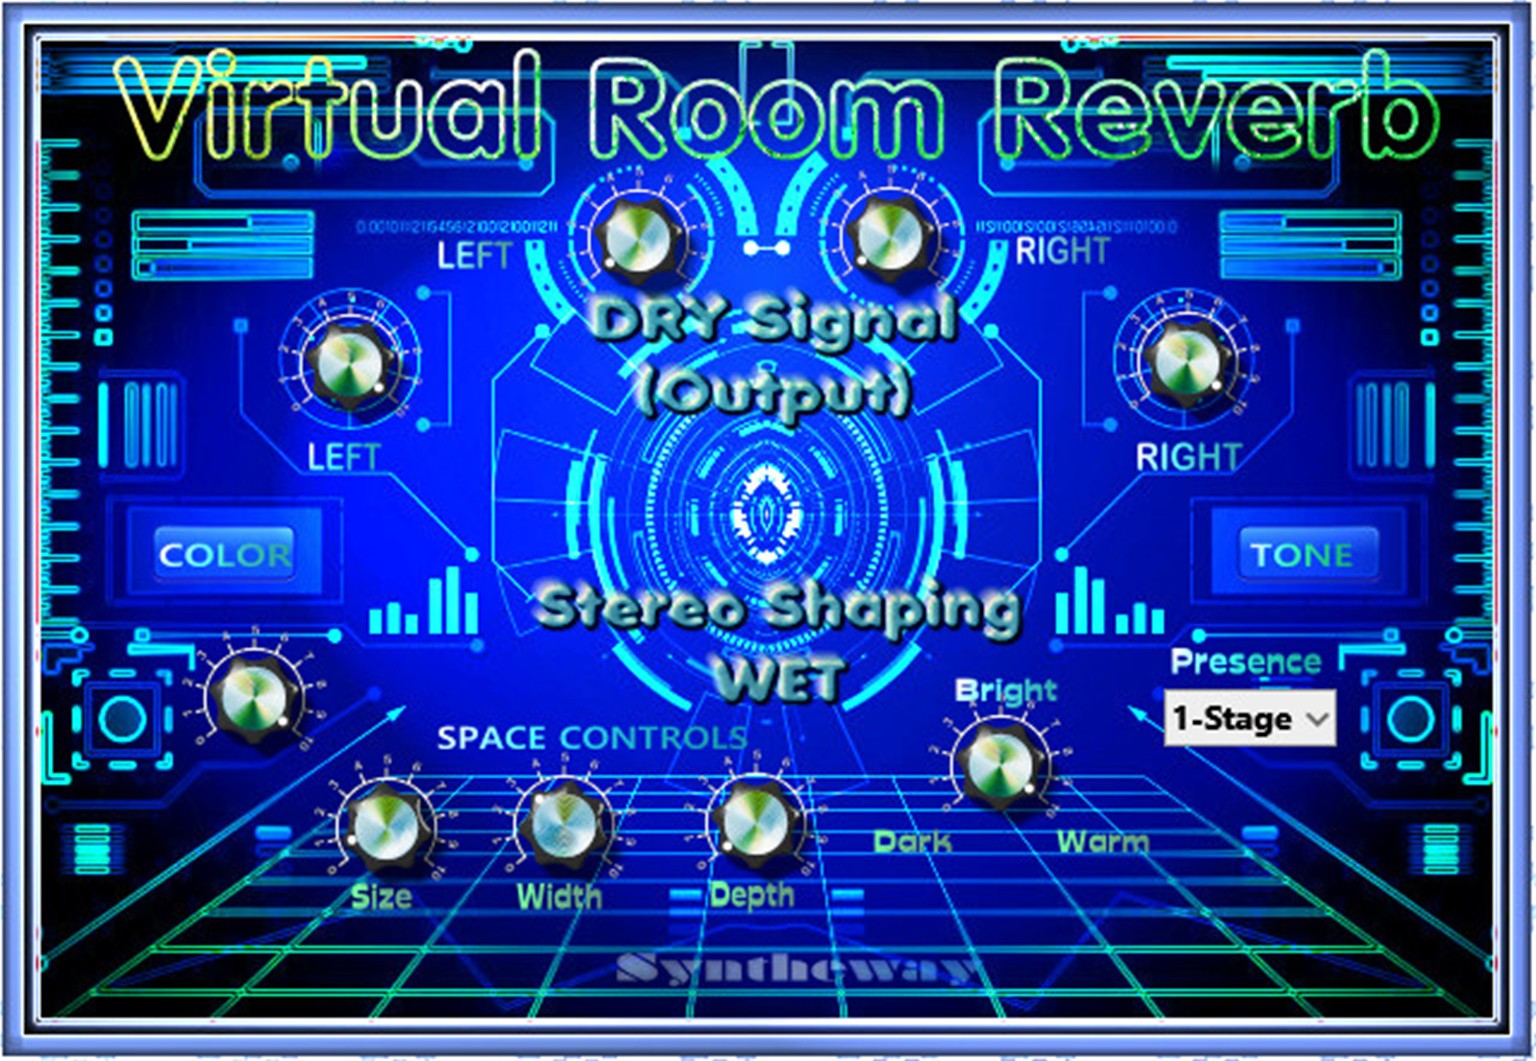 Virtual Room Reverb VST VST3 Software (Virtual Effect